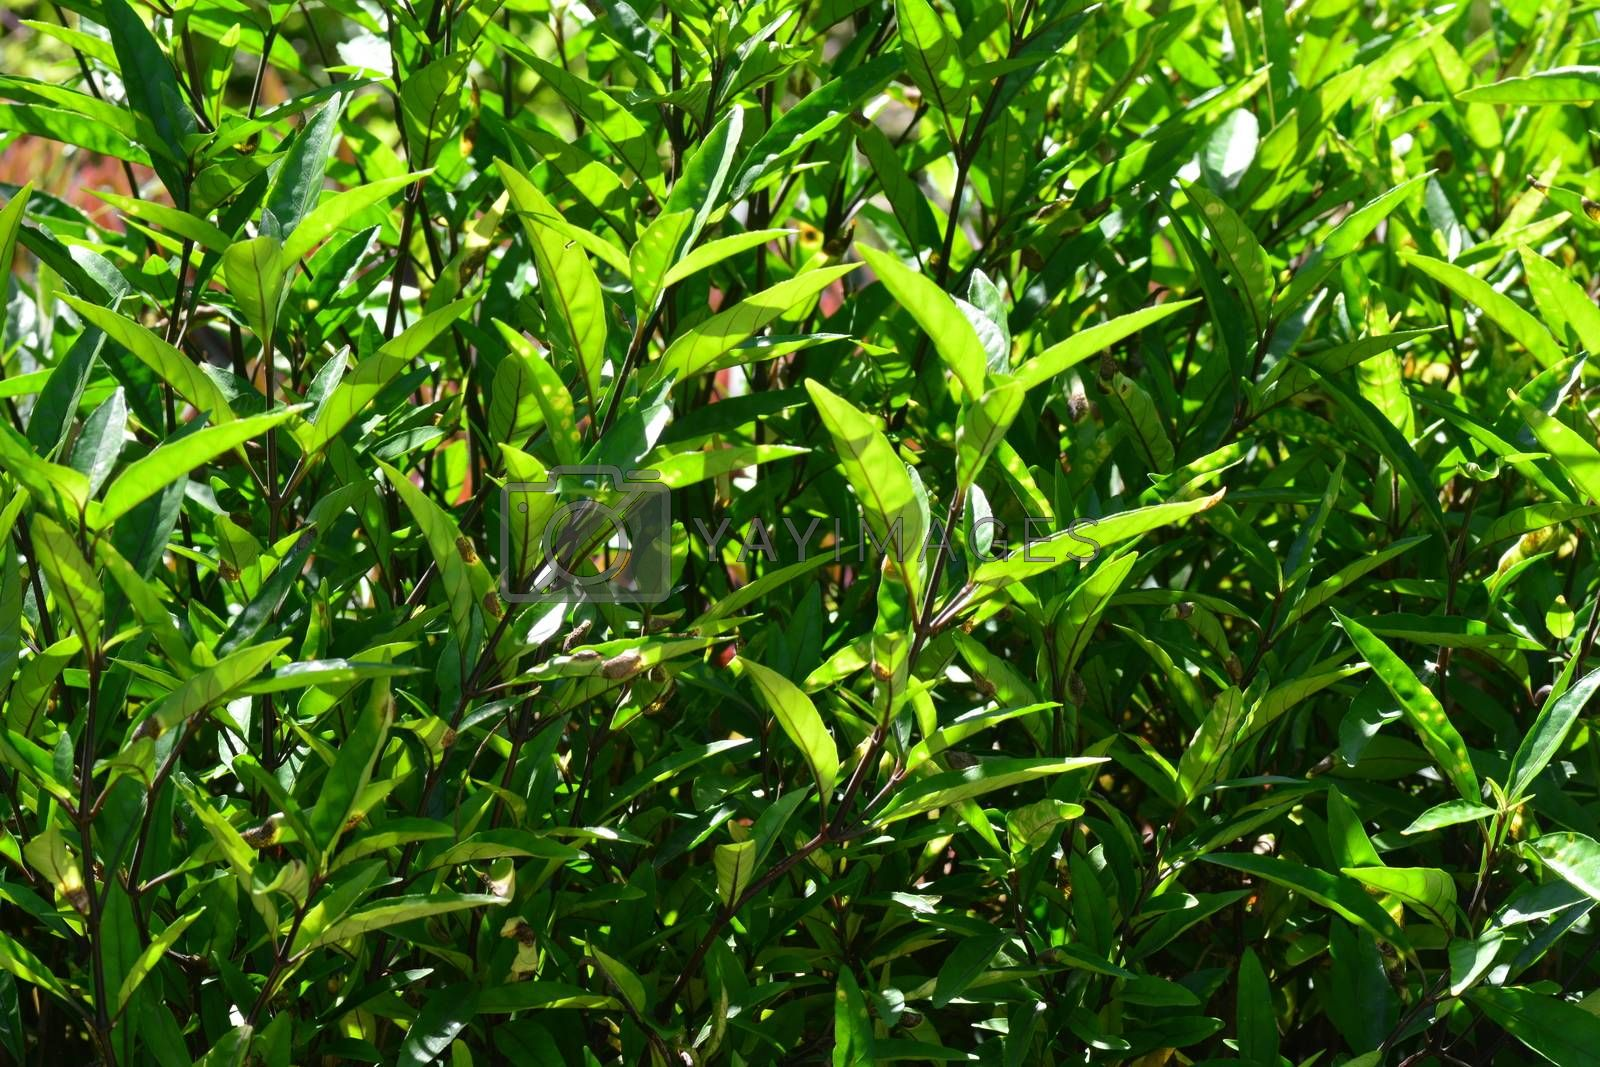 Justicia gendarussa, commonly known as willow-leaved justicia The plant has shown promise as a source of a compound that inhibits an enzyme crucial to the development of HIV